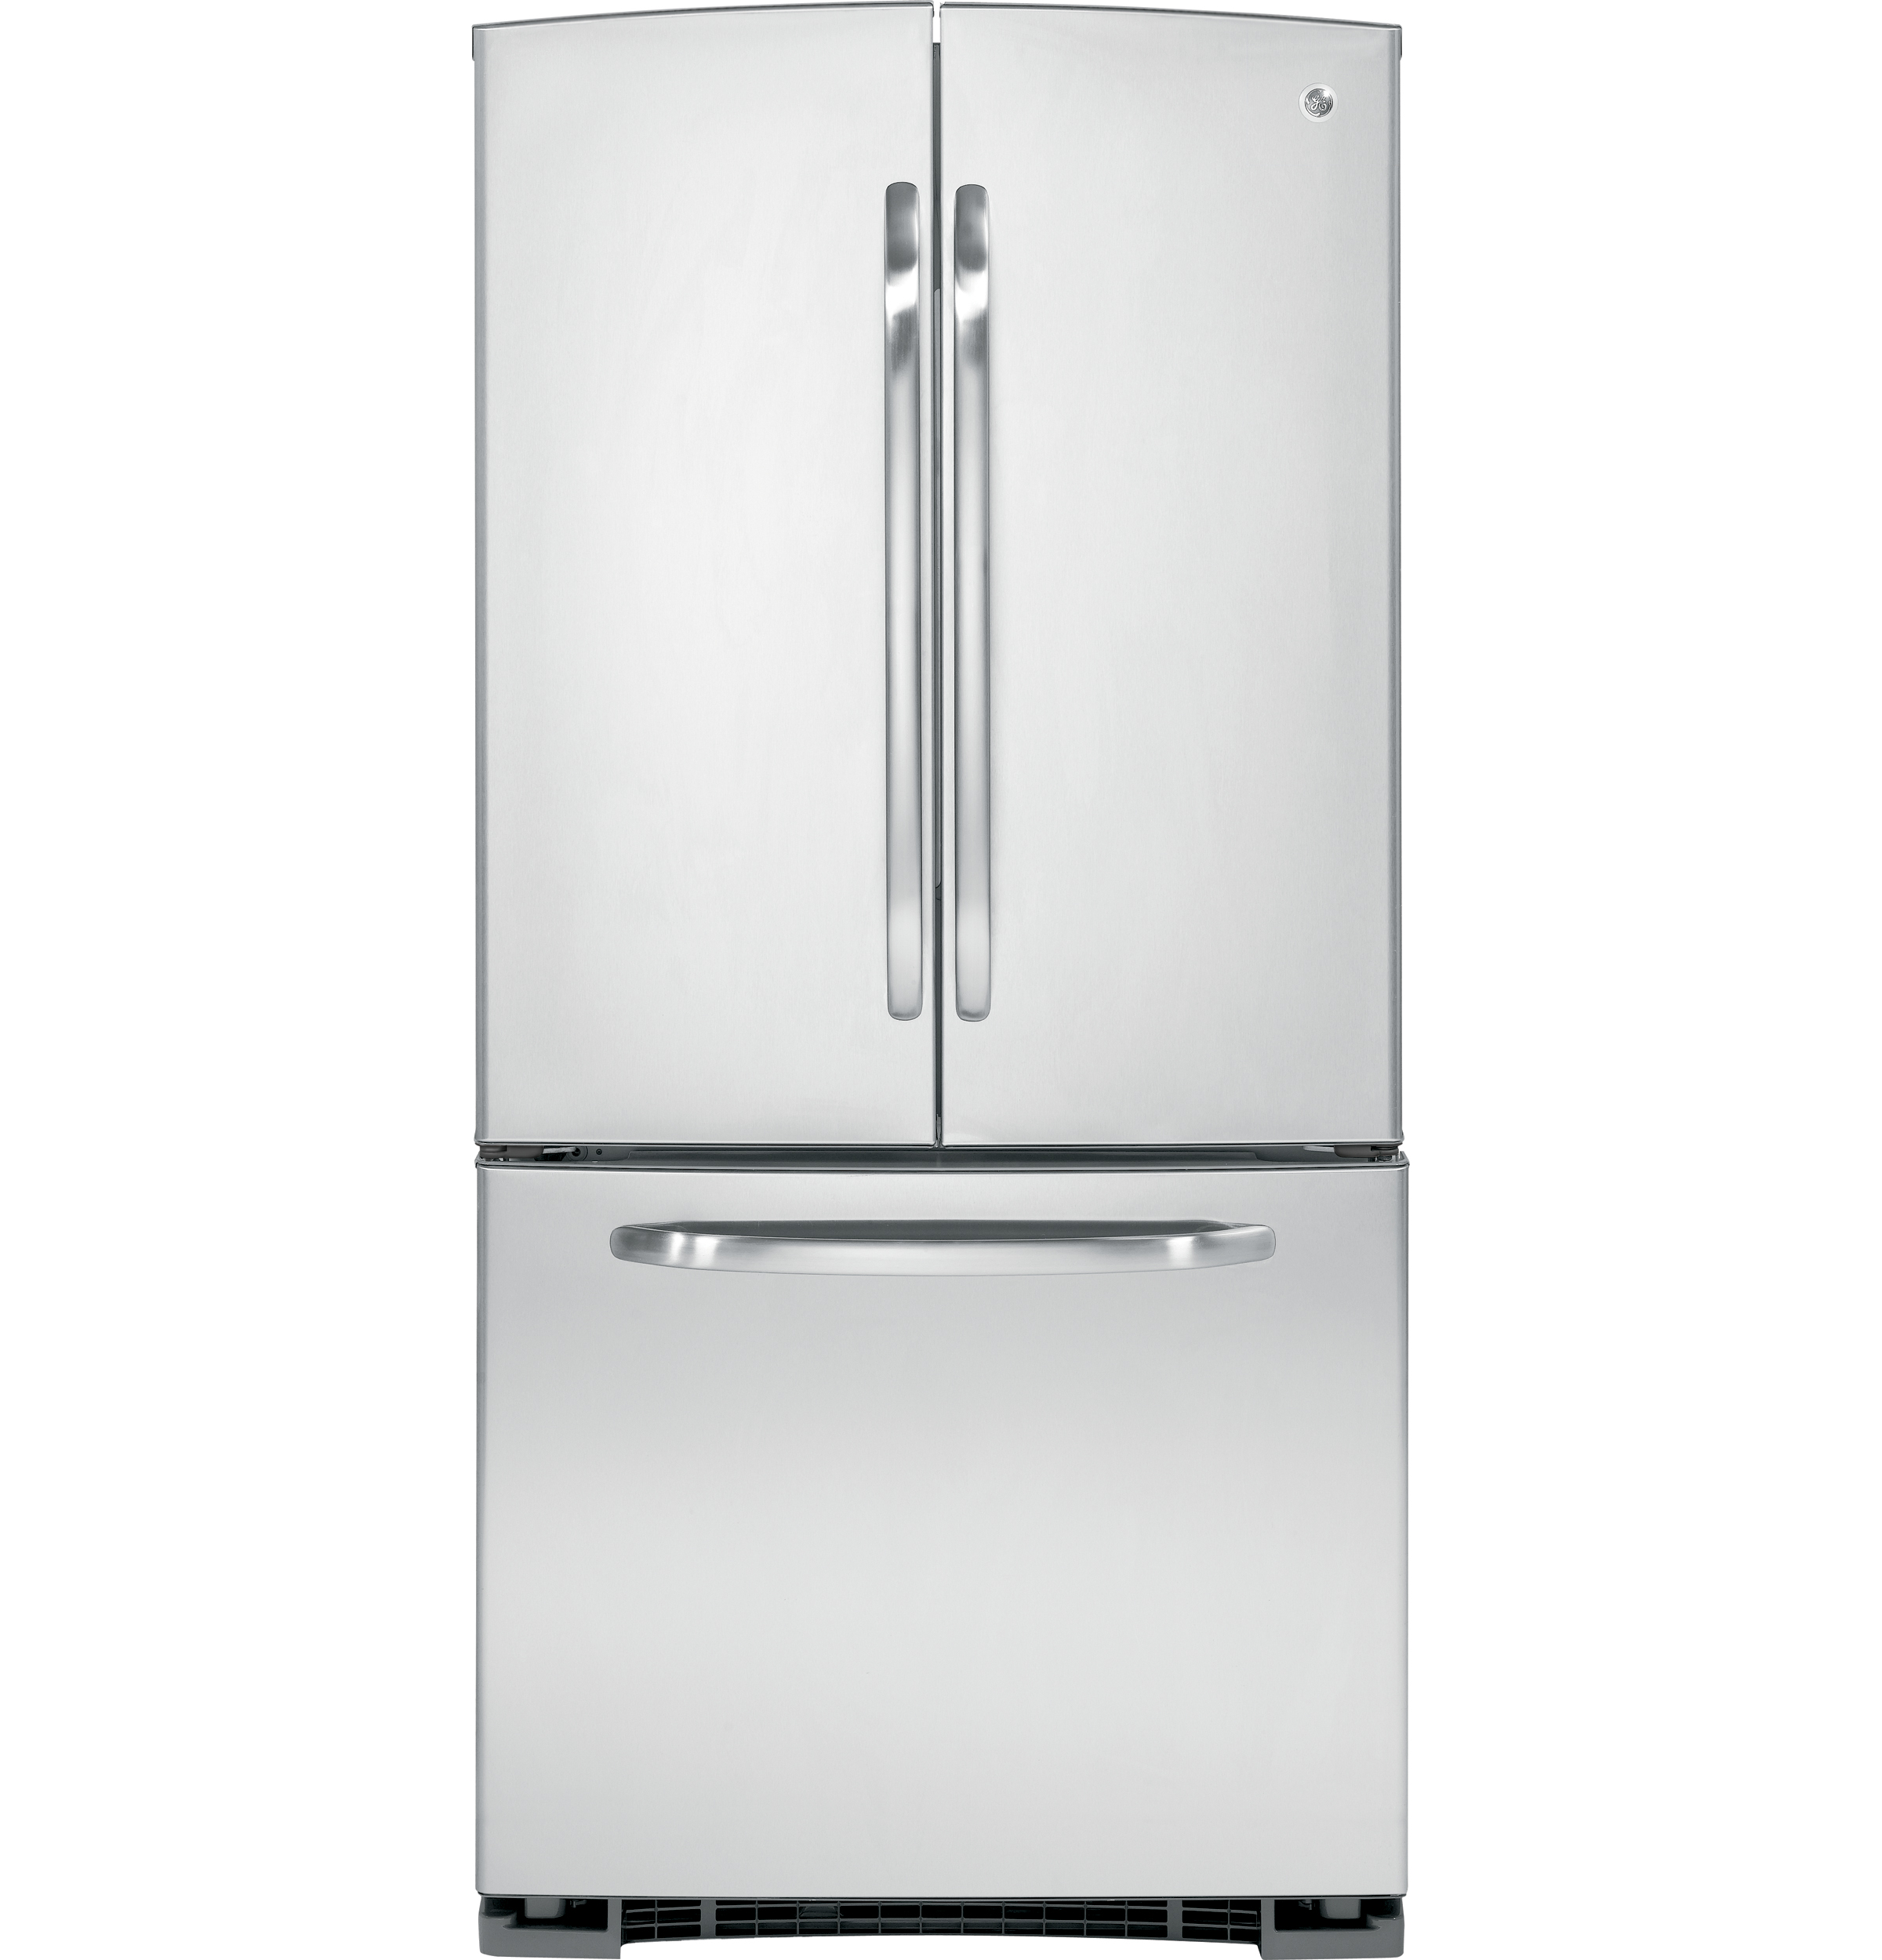 Ge energy star 220 cu ft french door refrigerator product image rubansaba